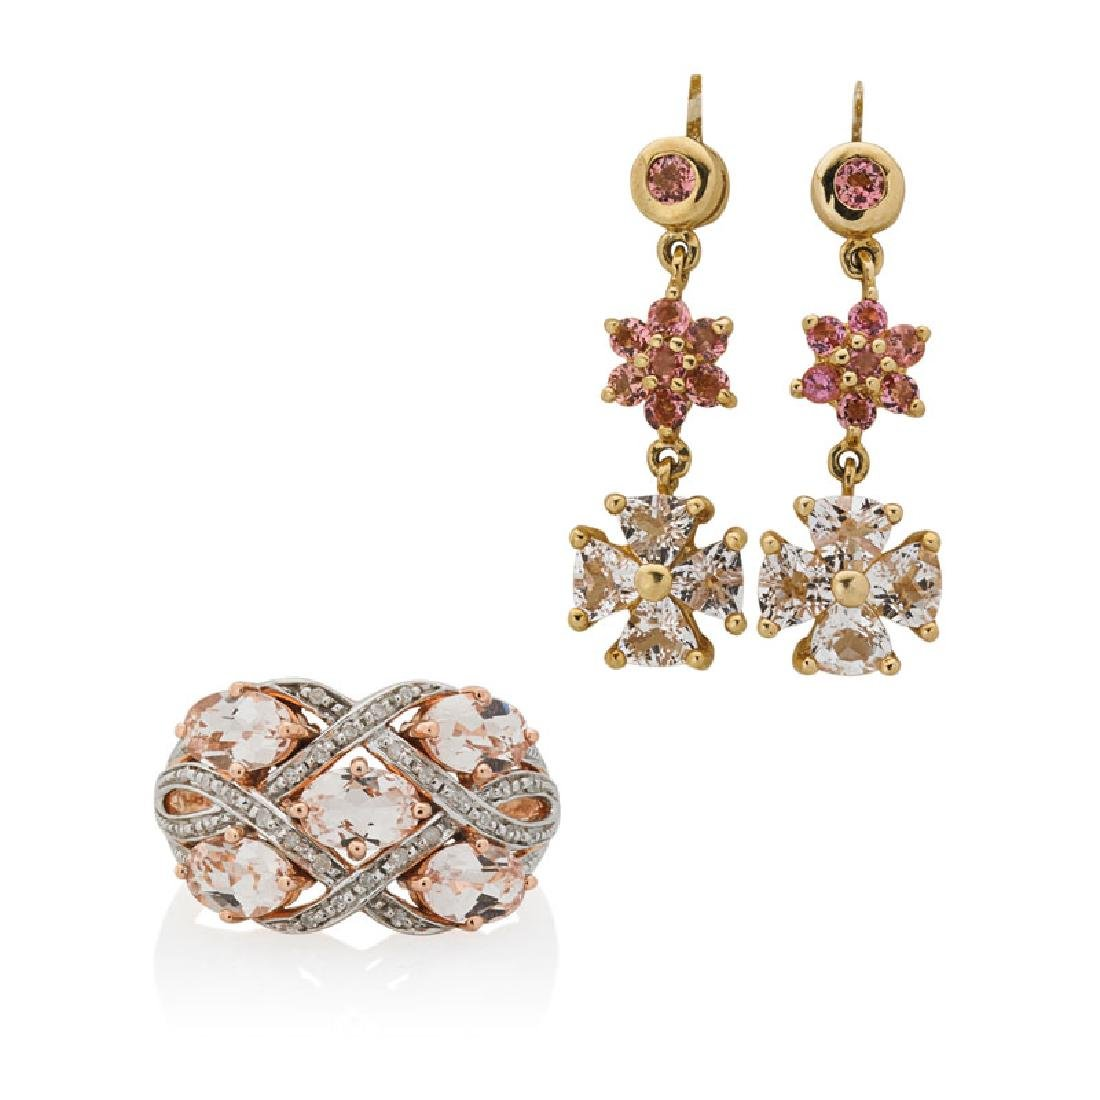 DIAMOND OR SPINEL & MORGANITE GOLD JEWELRY